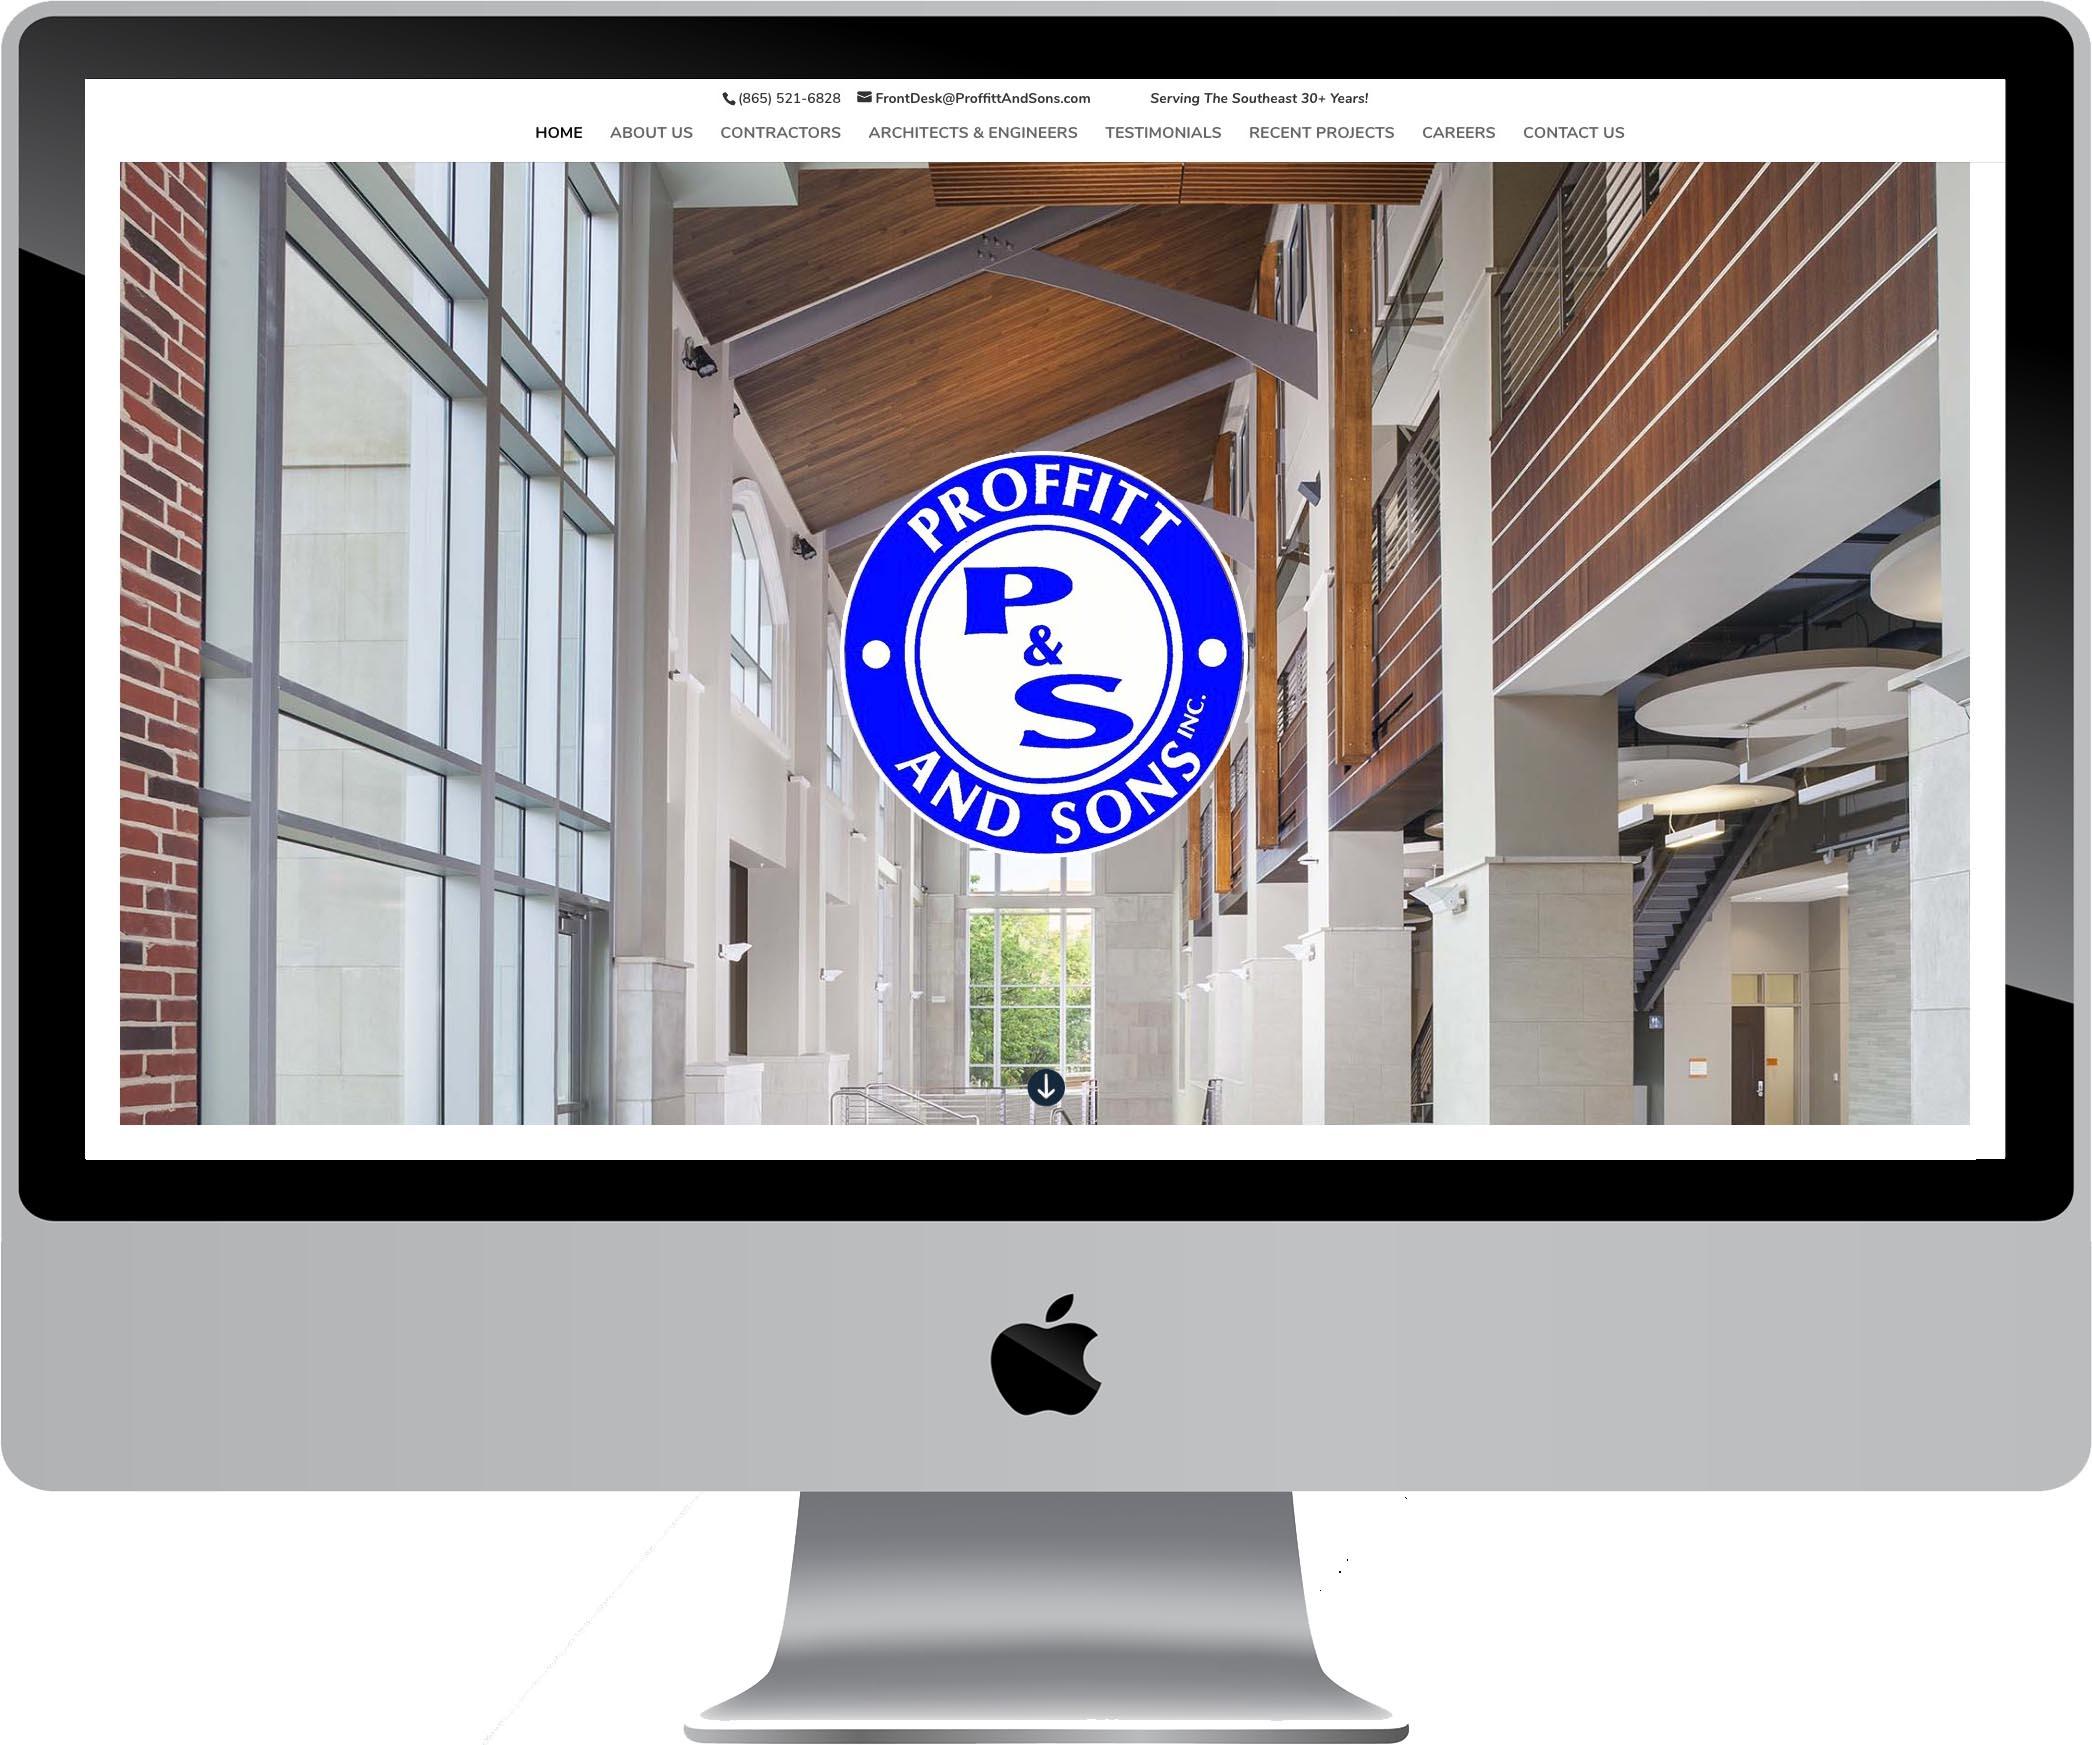 Proffitt & Sons Construction Company Web Design